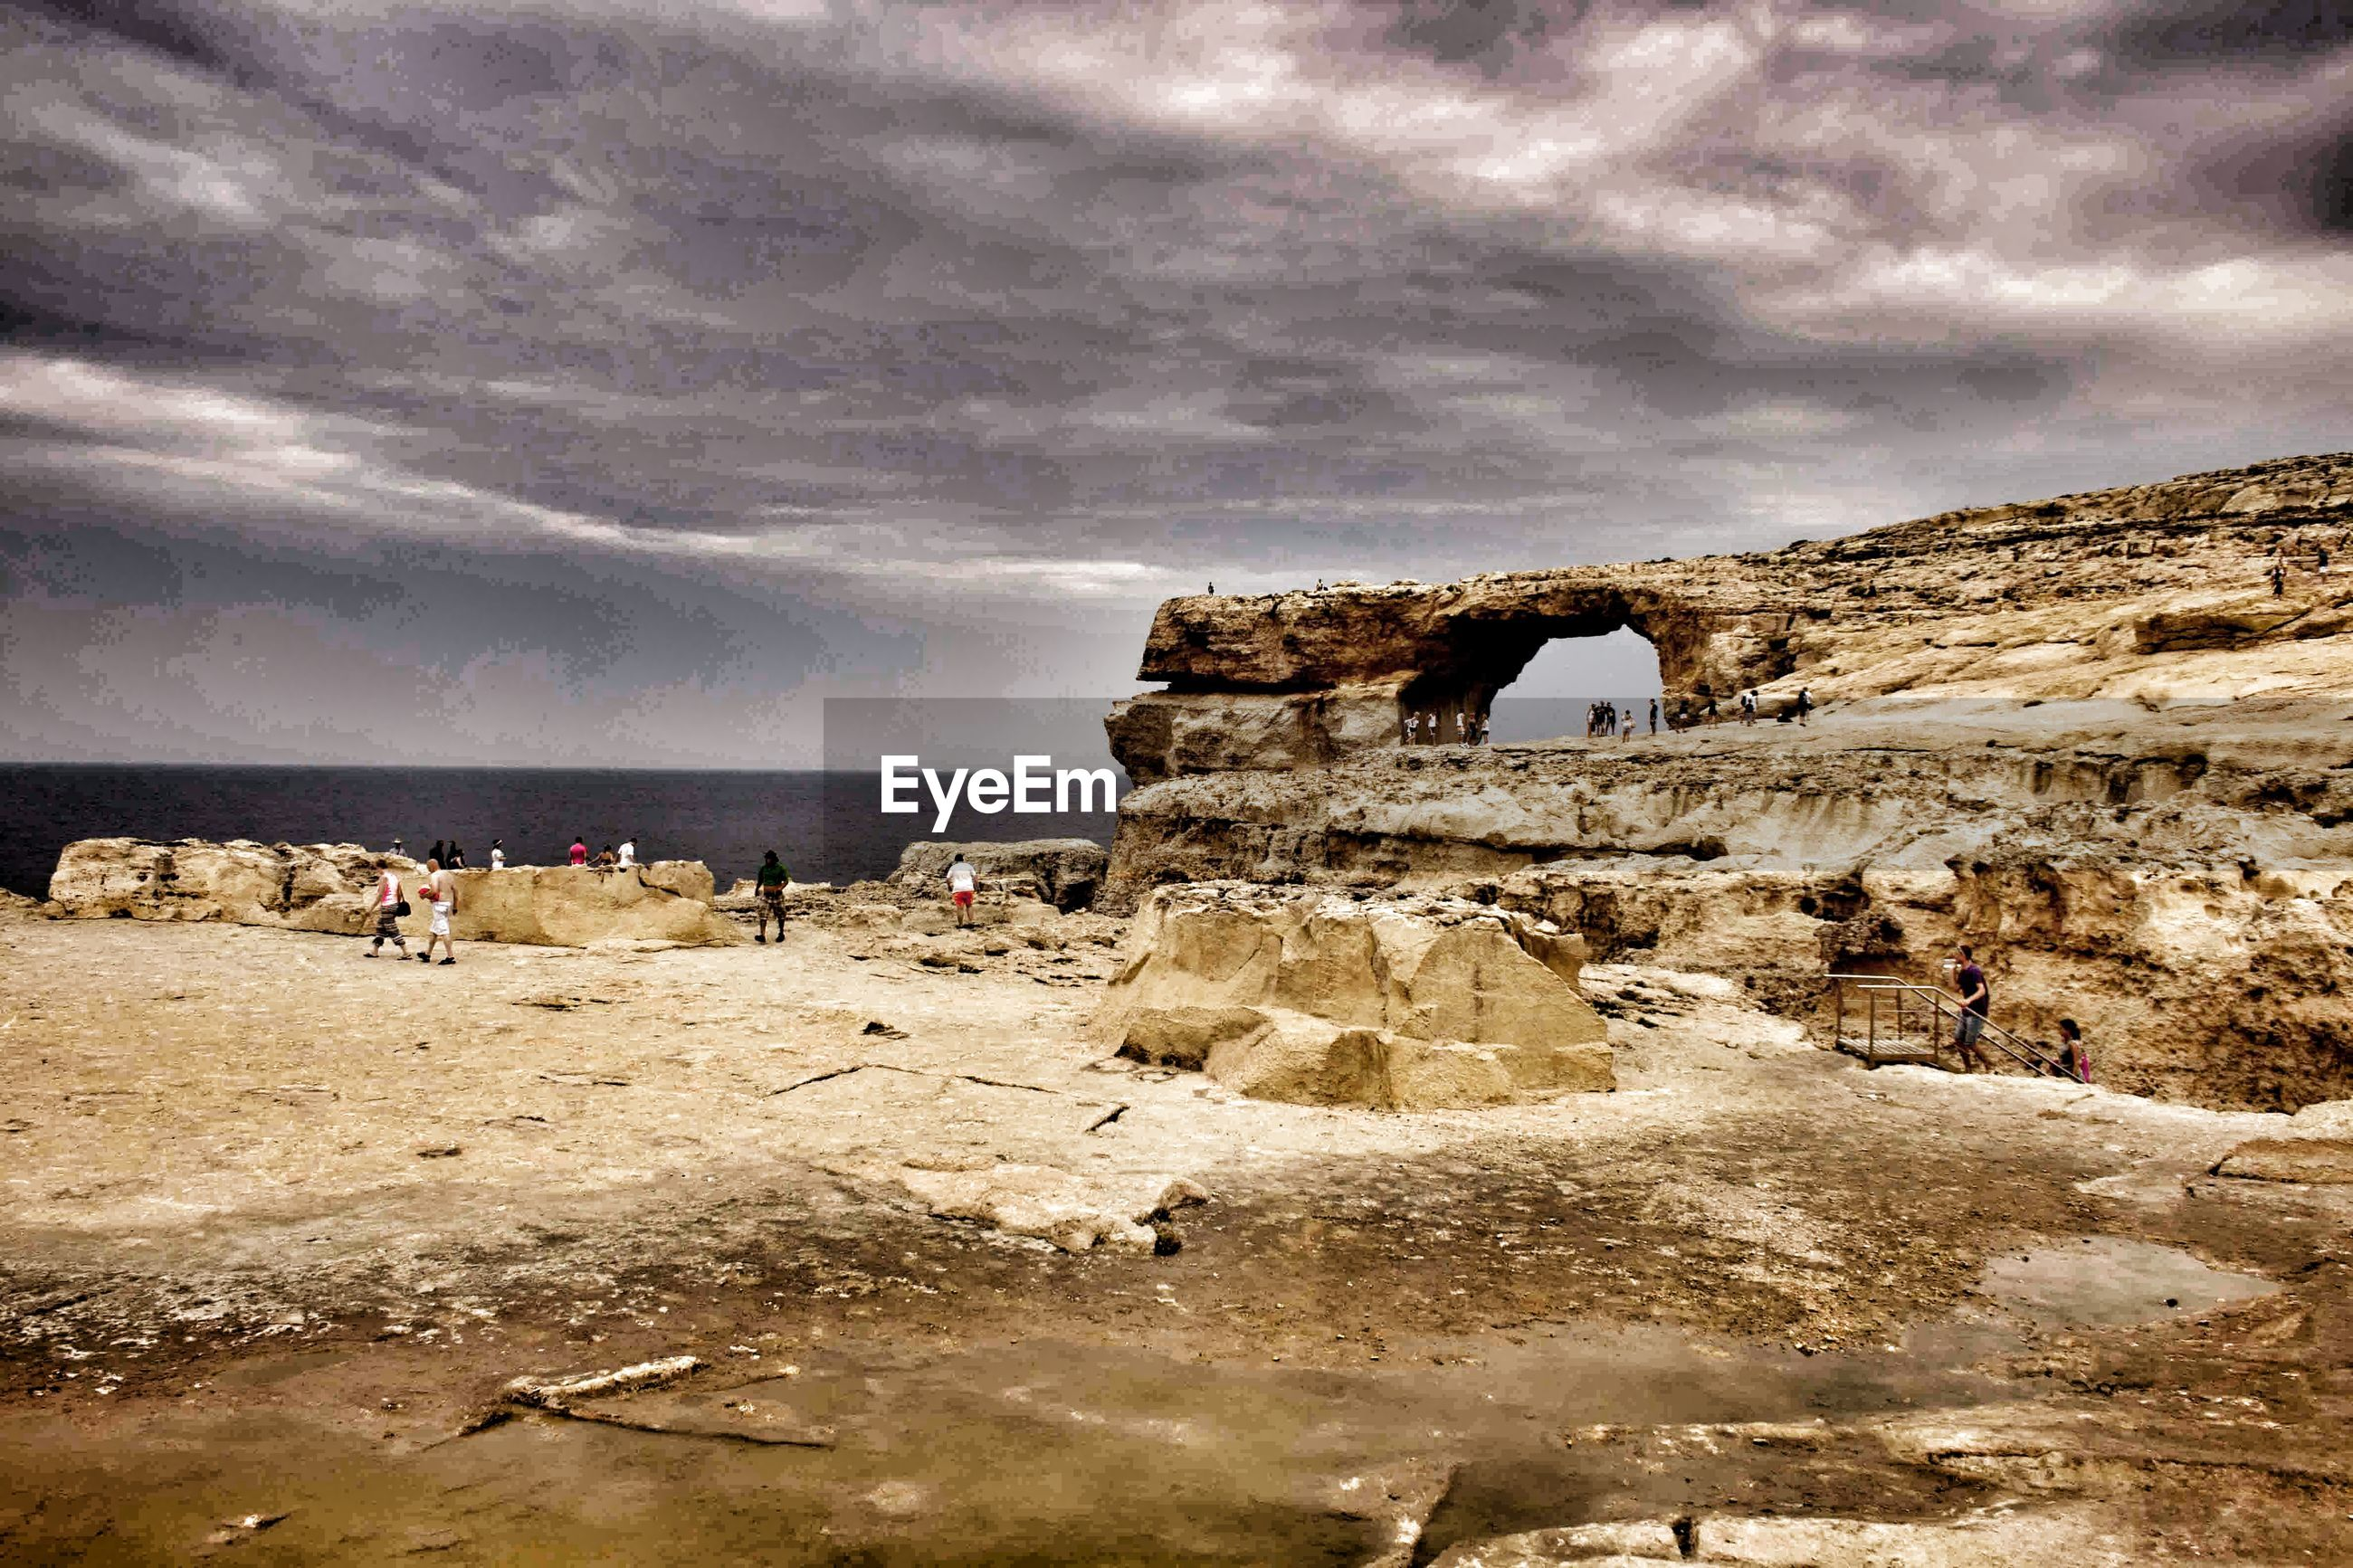 sky, sea, cloud - sky, horizon over water, beach, cloudy, water, shore, scenics, rock - object, cloud, nature, beauty in nature, tranquility, built structure, tranquil scene, rock formation, sand, overcast, architecture